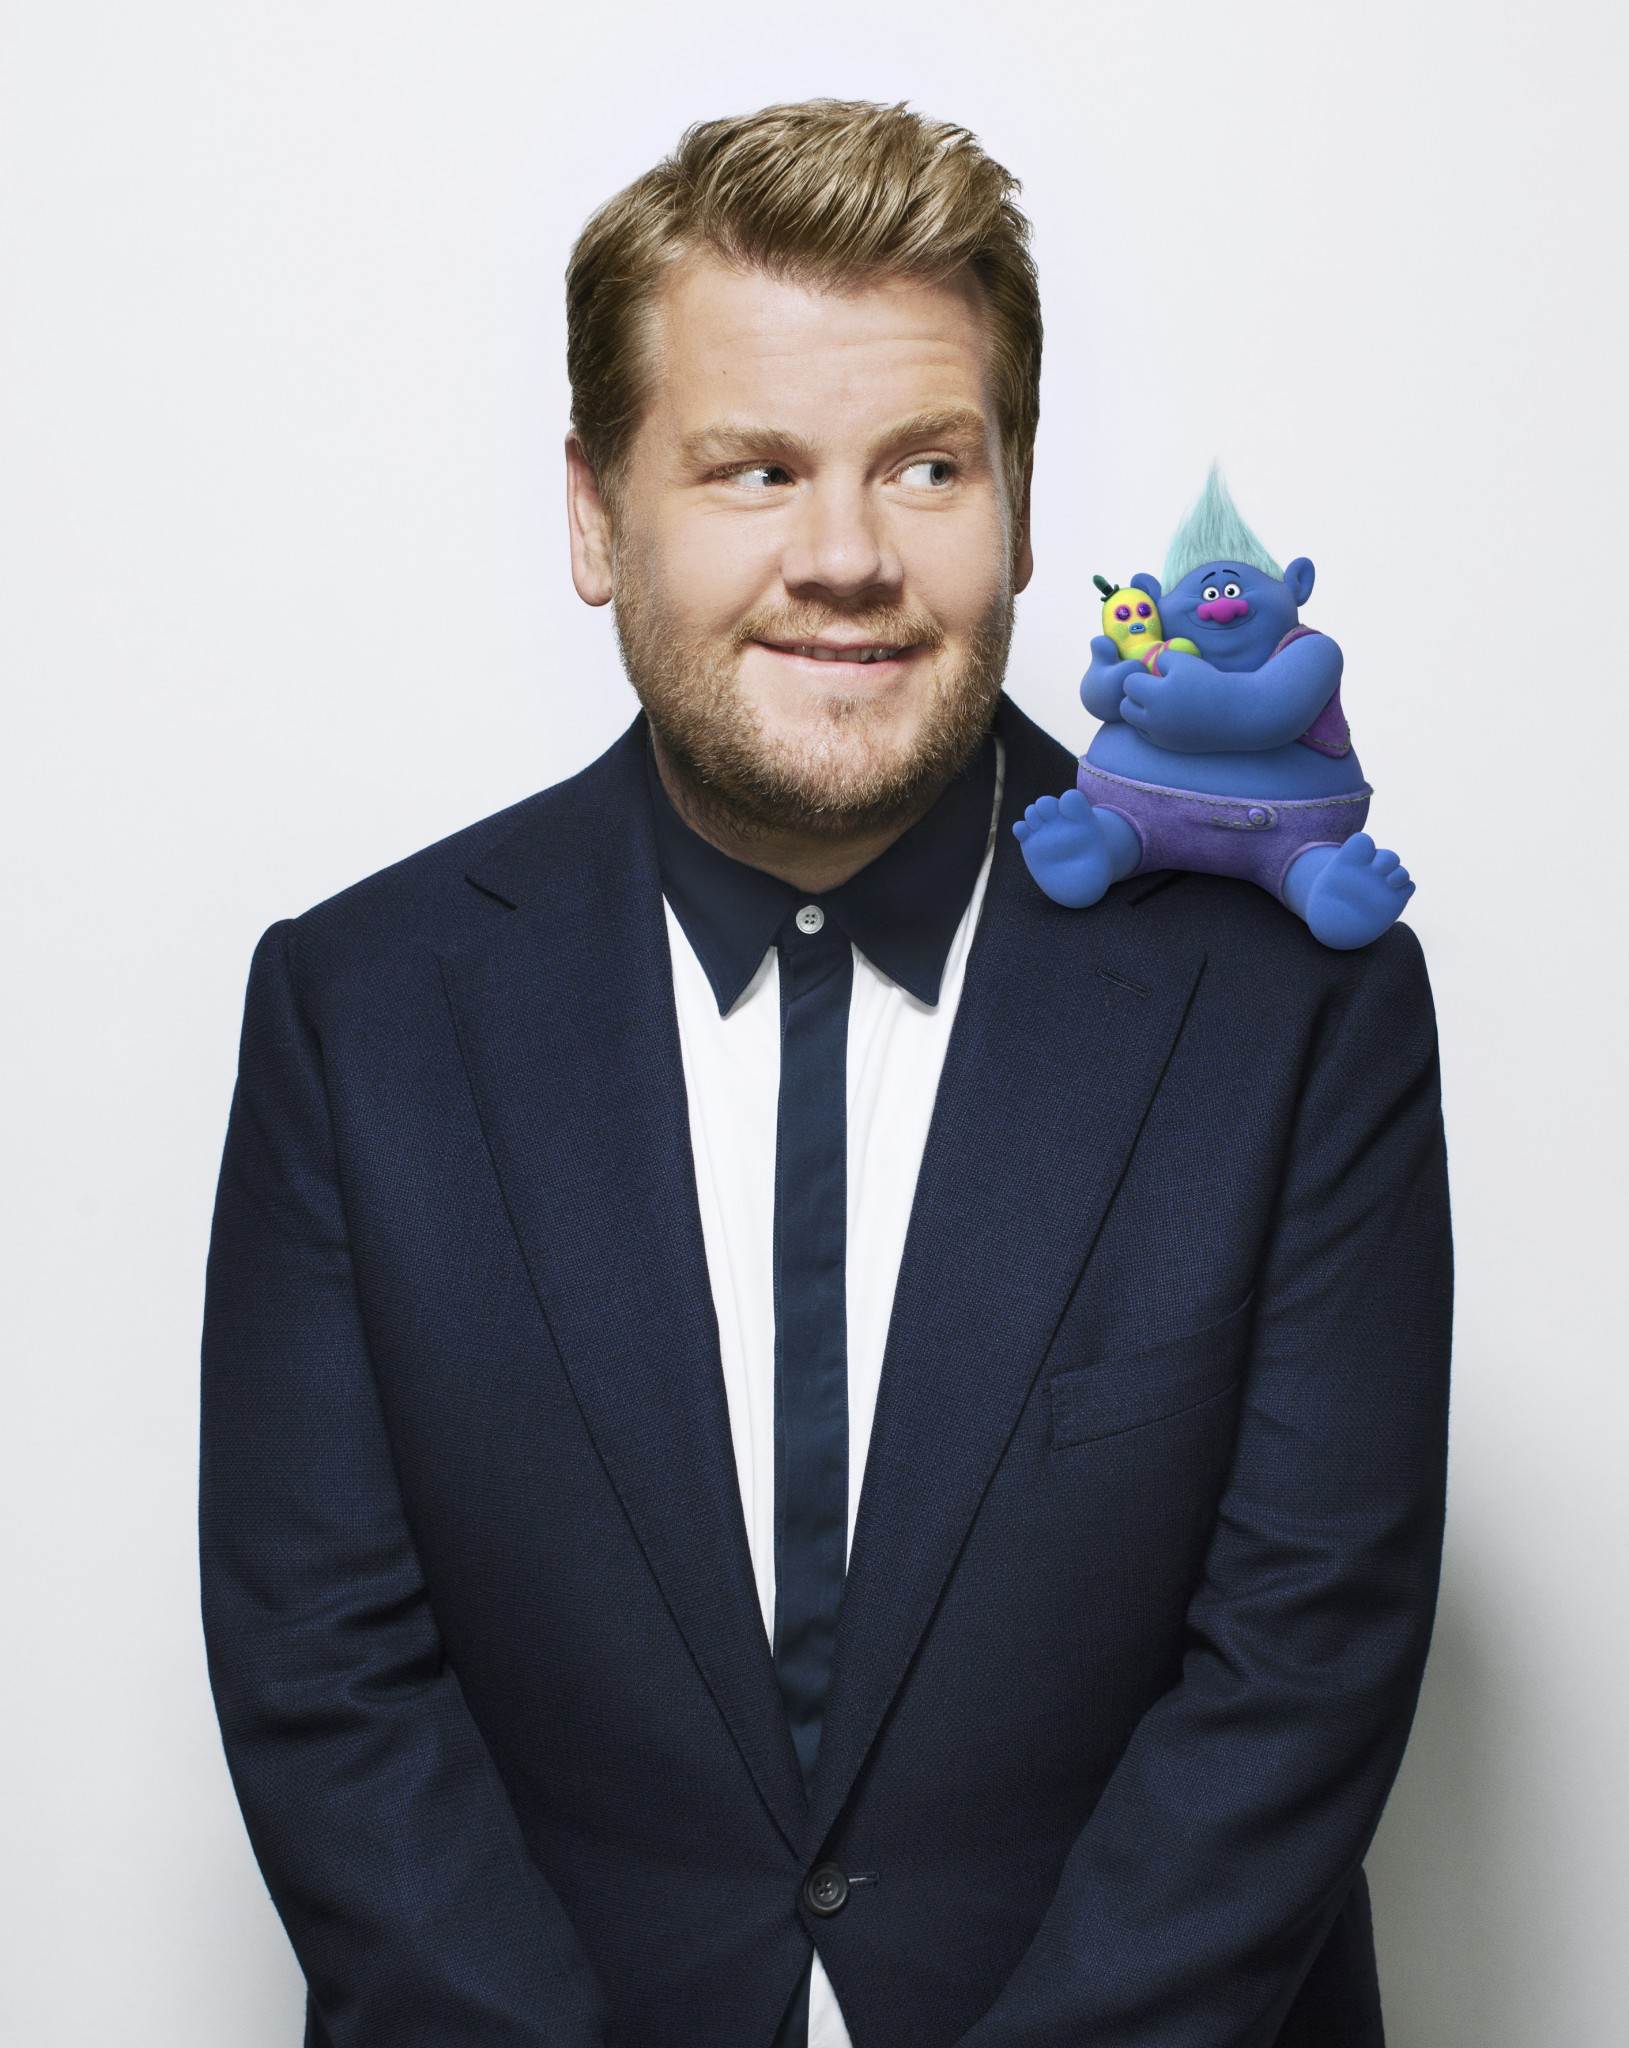 WEST HOLLYWOOD, CA.- JUNE 9: Comedian and TV host James Corden is photographed for Los Angeles Times on June 9, 2015 in West Hollywood, California. Published Image. CREDIT MUST READ: Jay L. Clendenin/Los Angeles Times/Contour by Getty Images. (Photo by Jay L. Clendenin/Los Angeles Times/Contour by Getty Images)